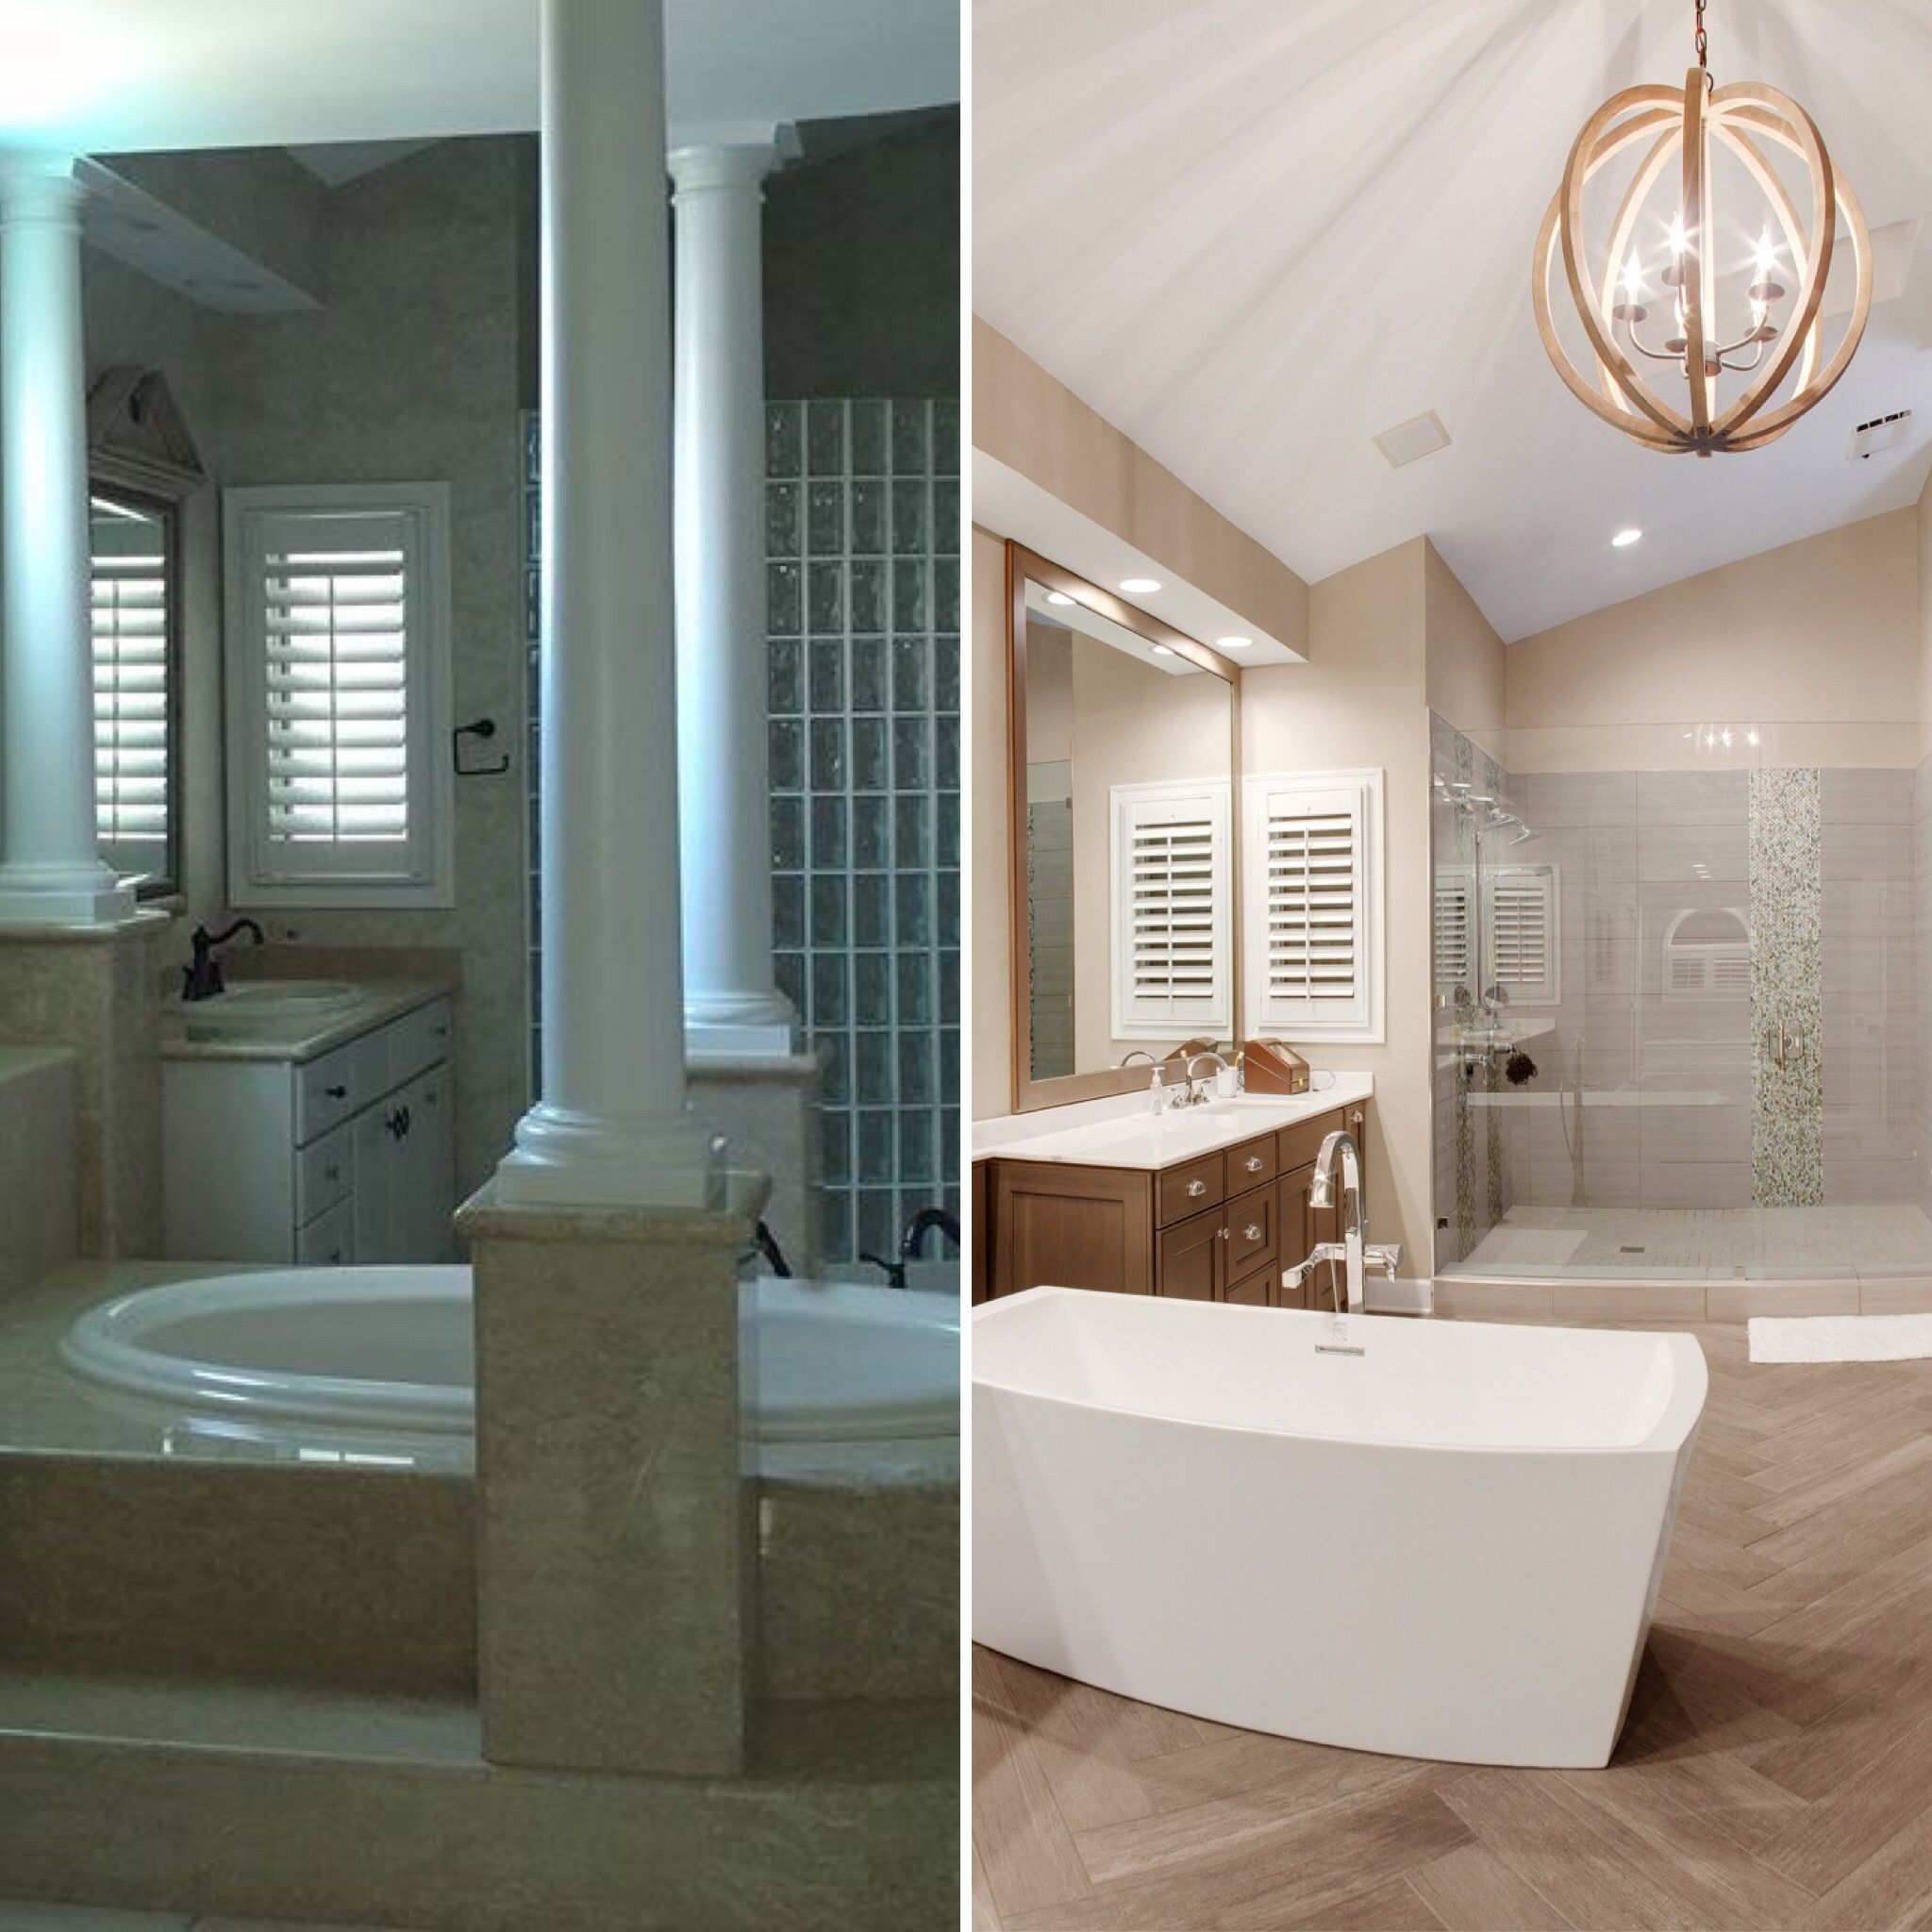 Incredible Before And After Of This Bathroom That Was Part Of A